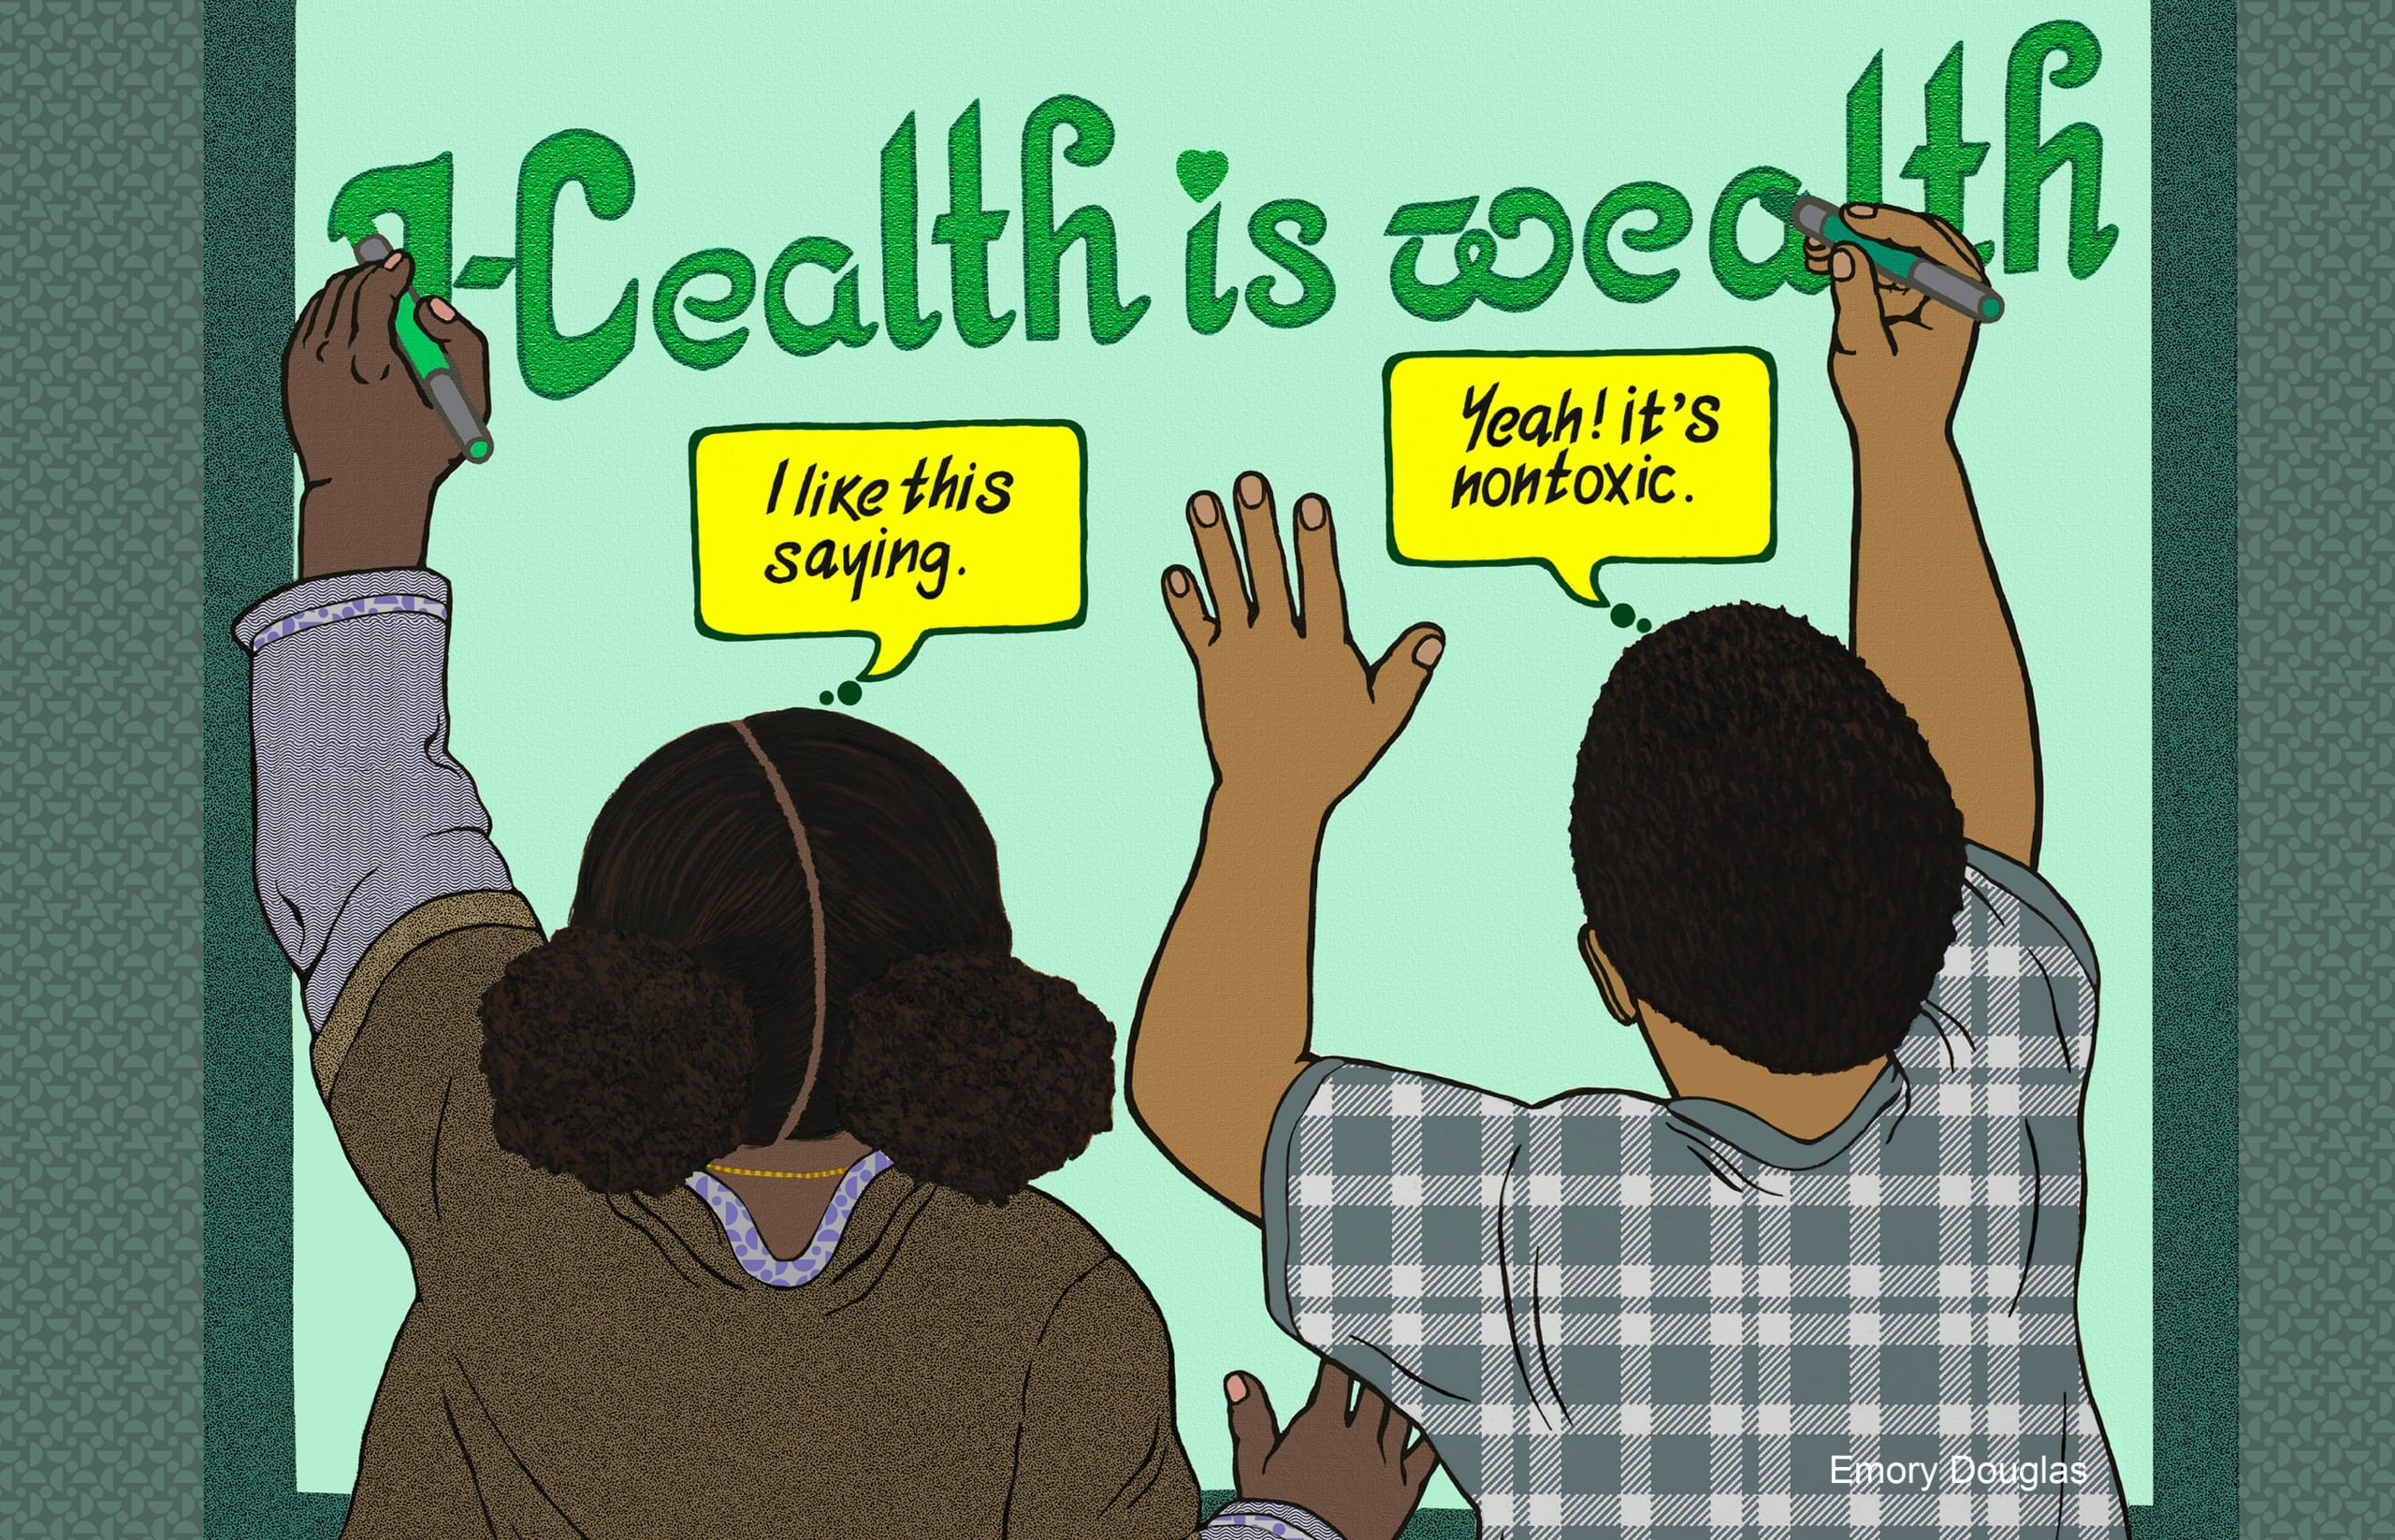 """Color drawing that shows two children from behind drawing the phrase """"Health is wealth"""" onto a surface in front of them.The young girl on the left says """"I like this saying,"""" the young boy on the right answers """"Yeah! It's nontoxic."""""""